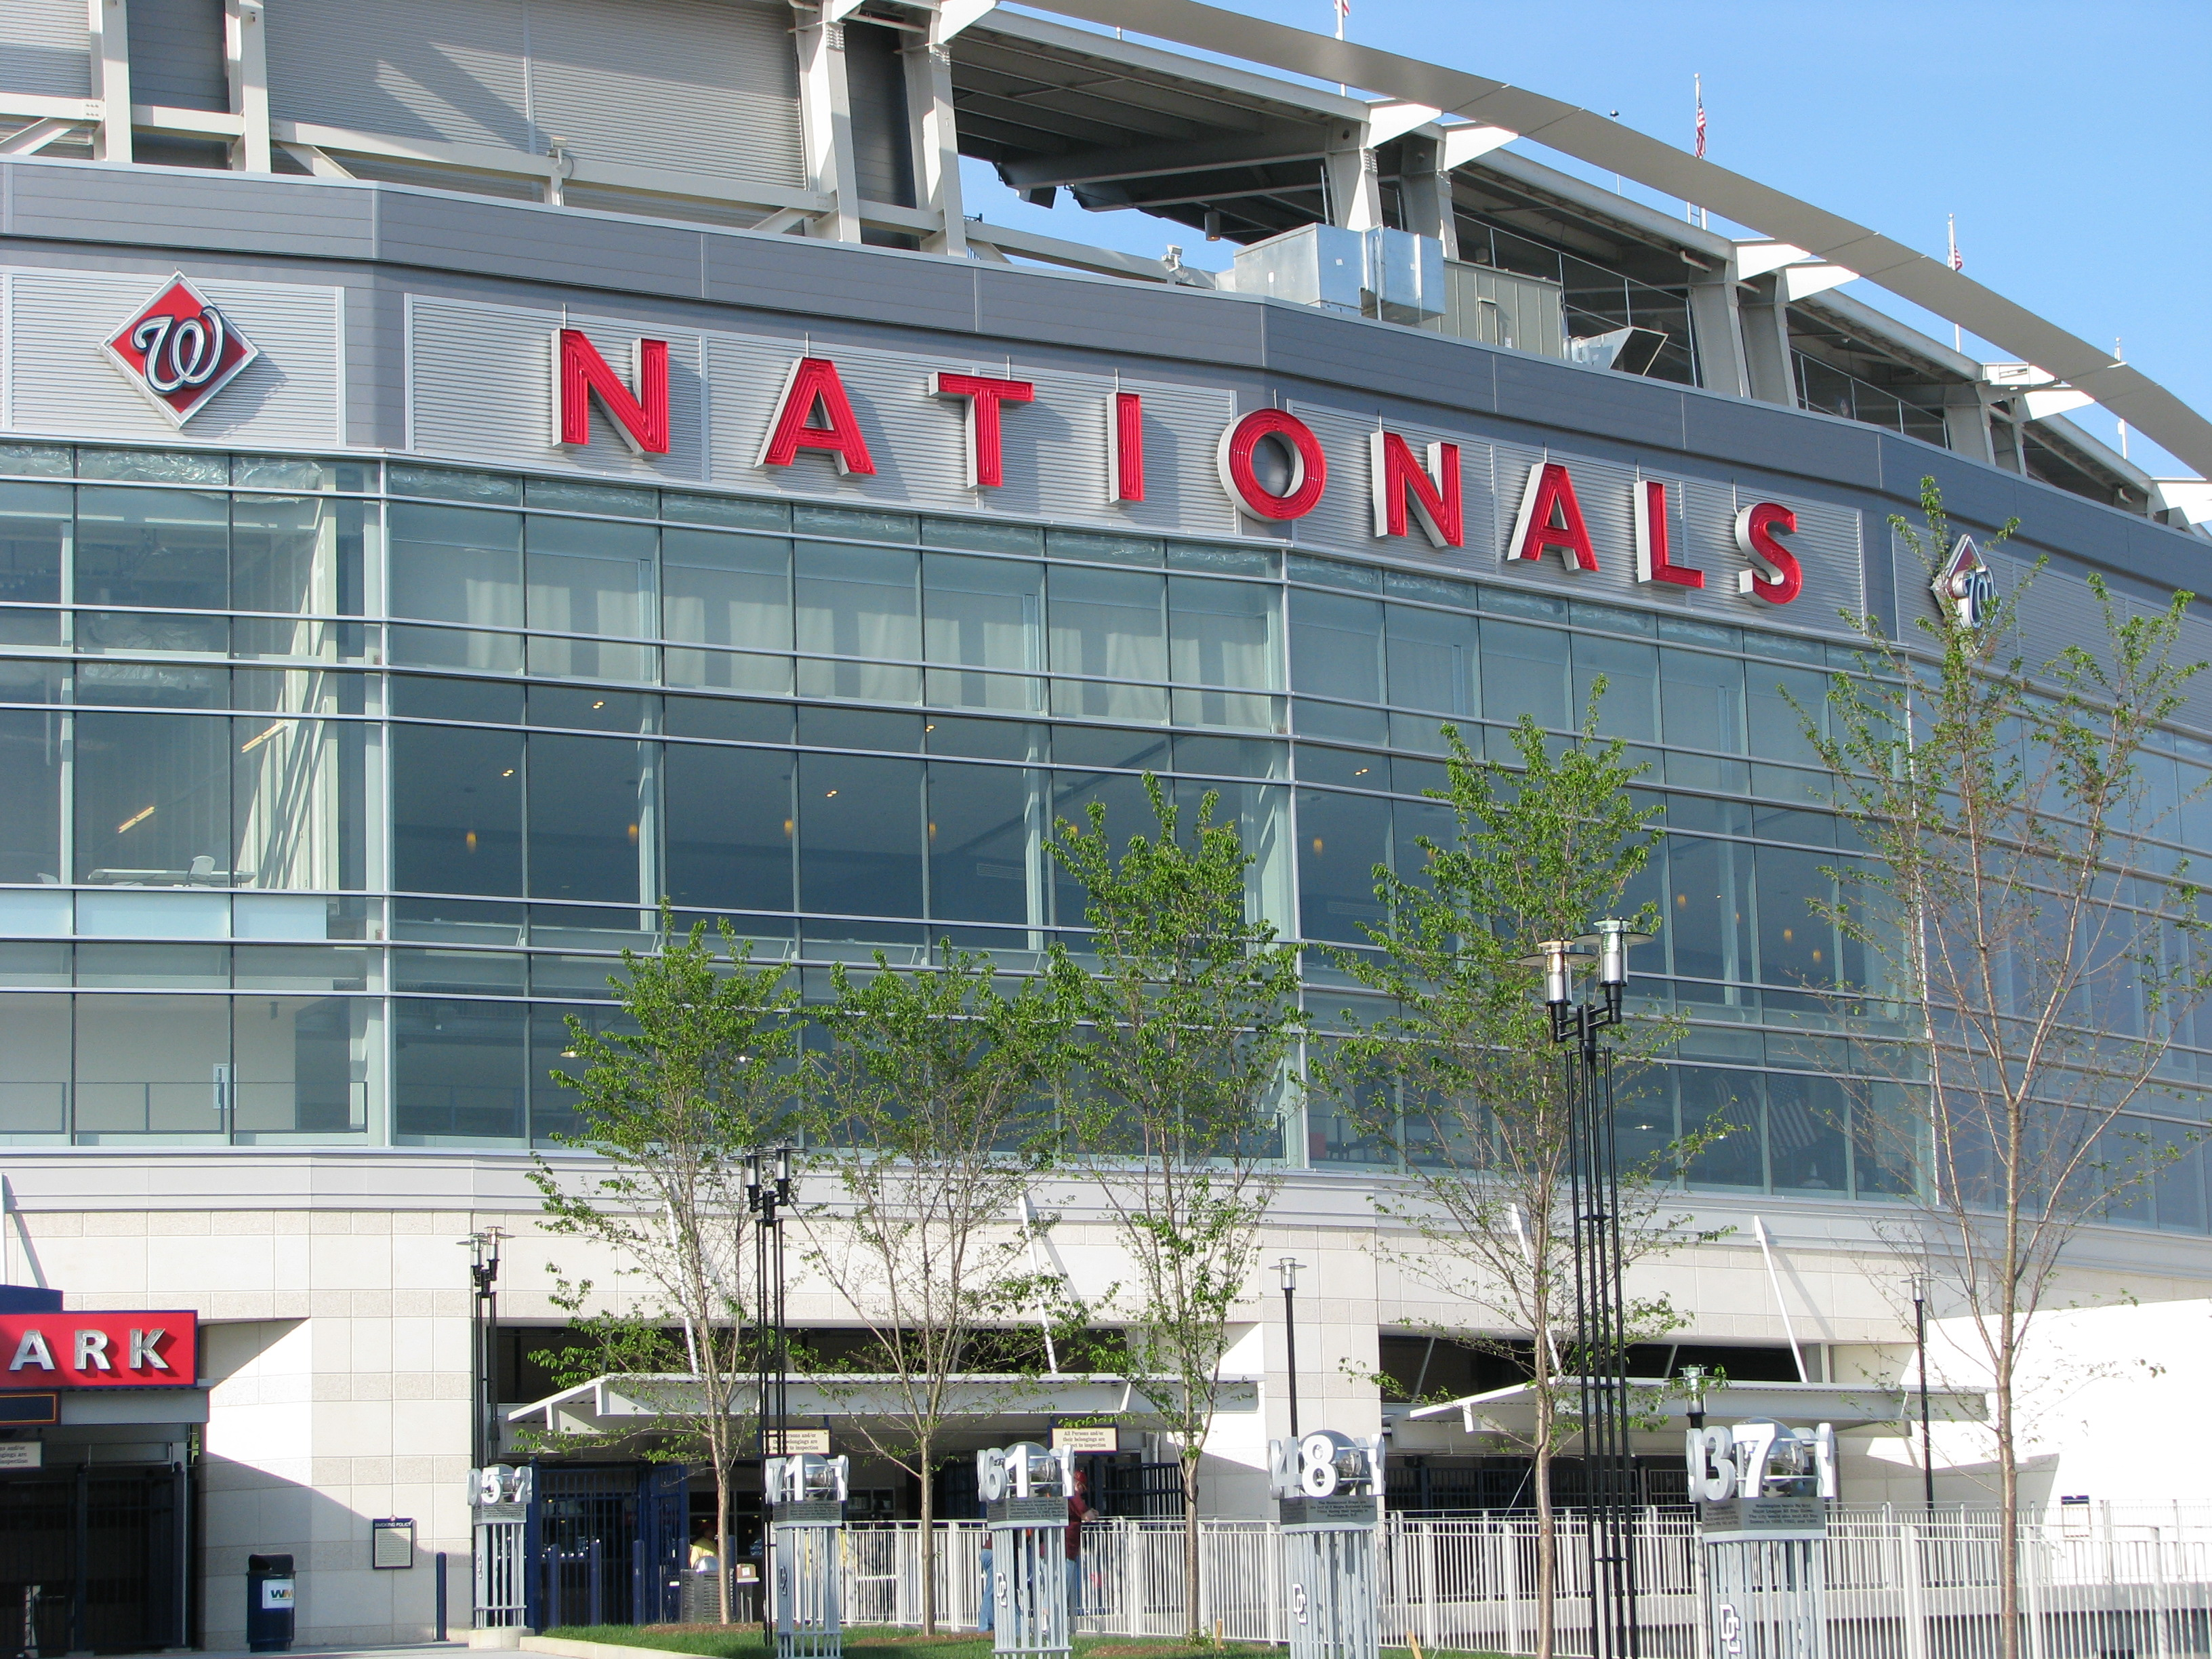 Nationals_Park_front.jpg